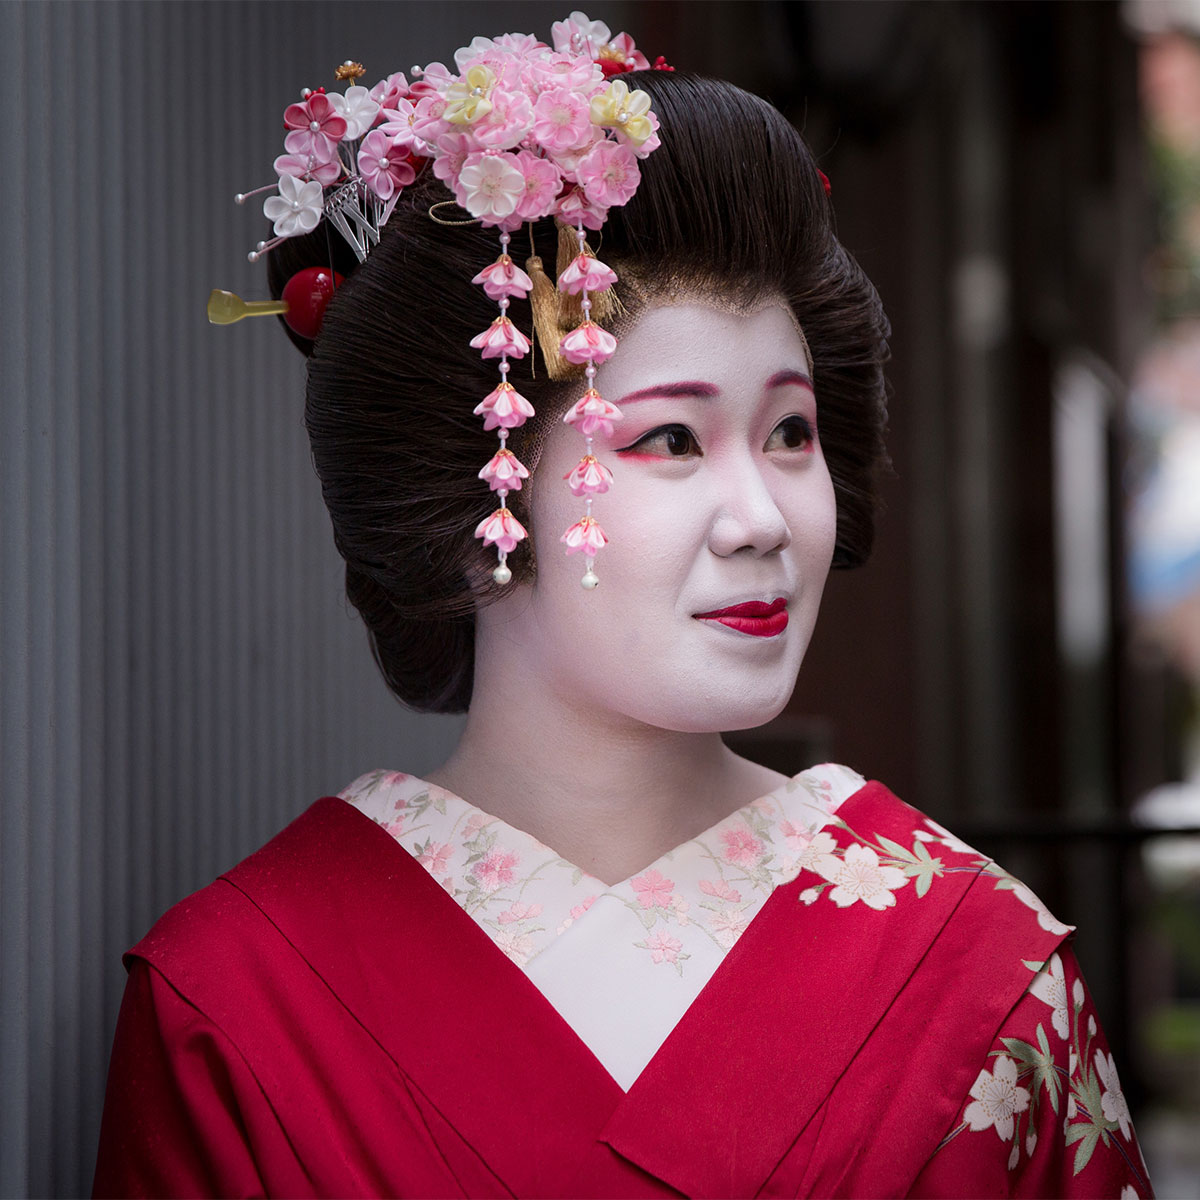 How to Book Geisha in Japan